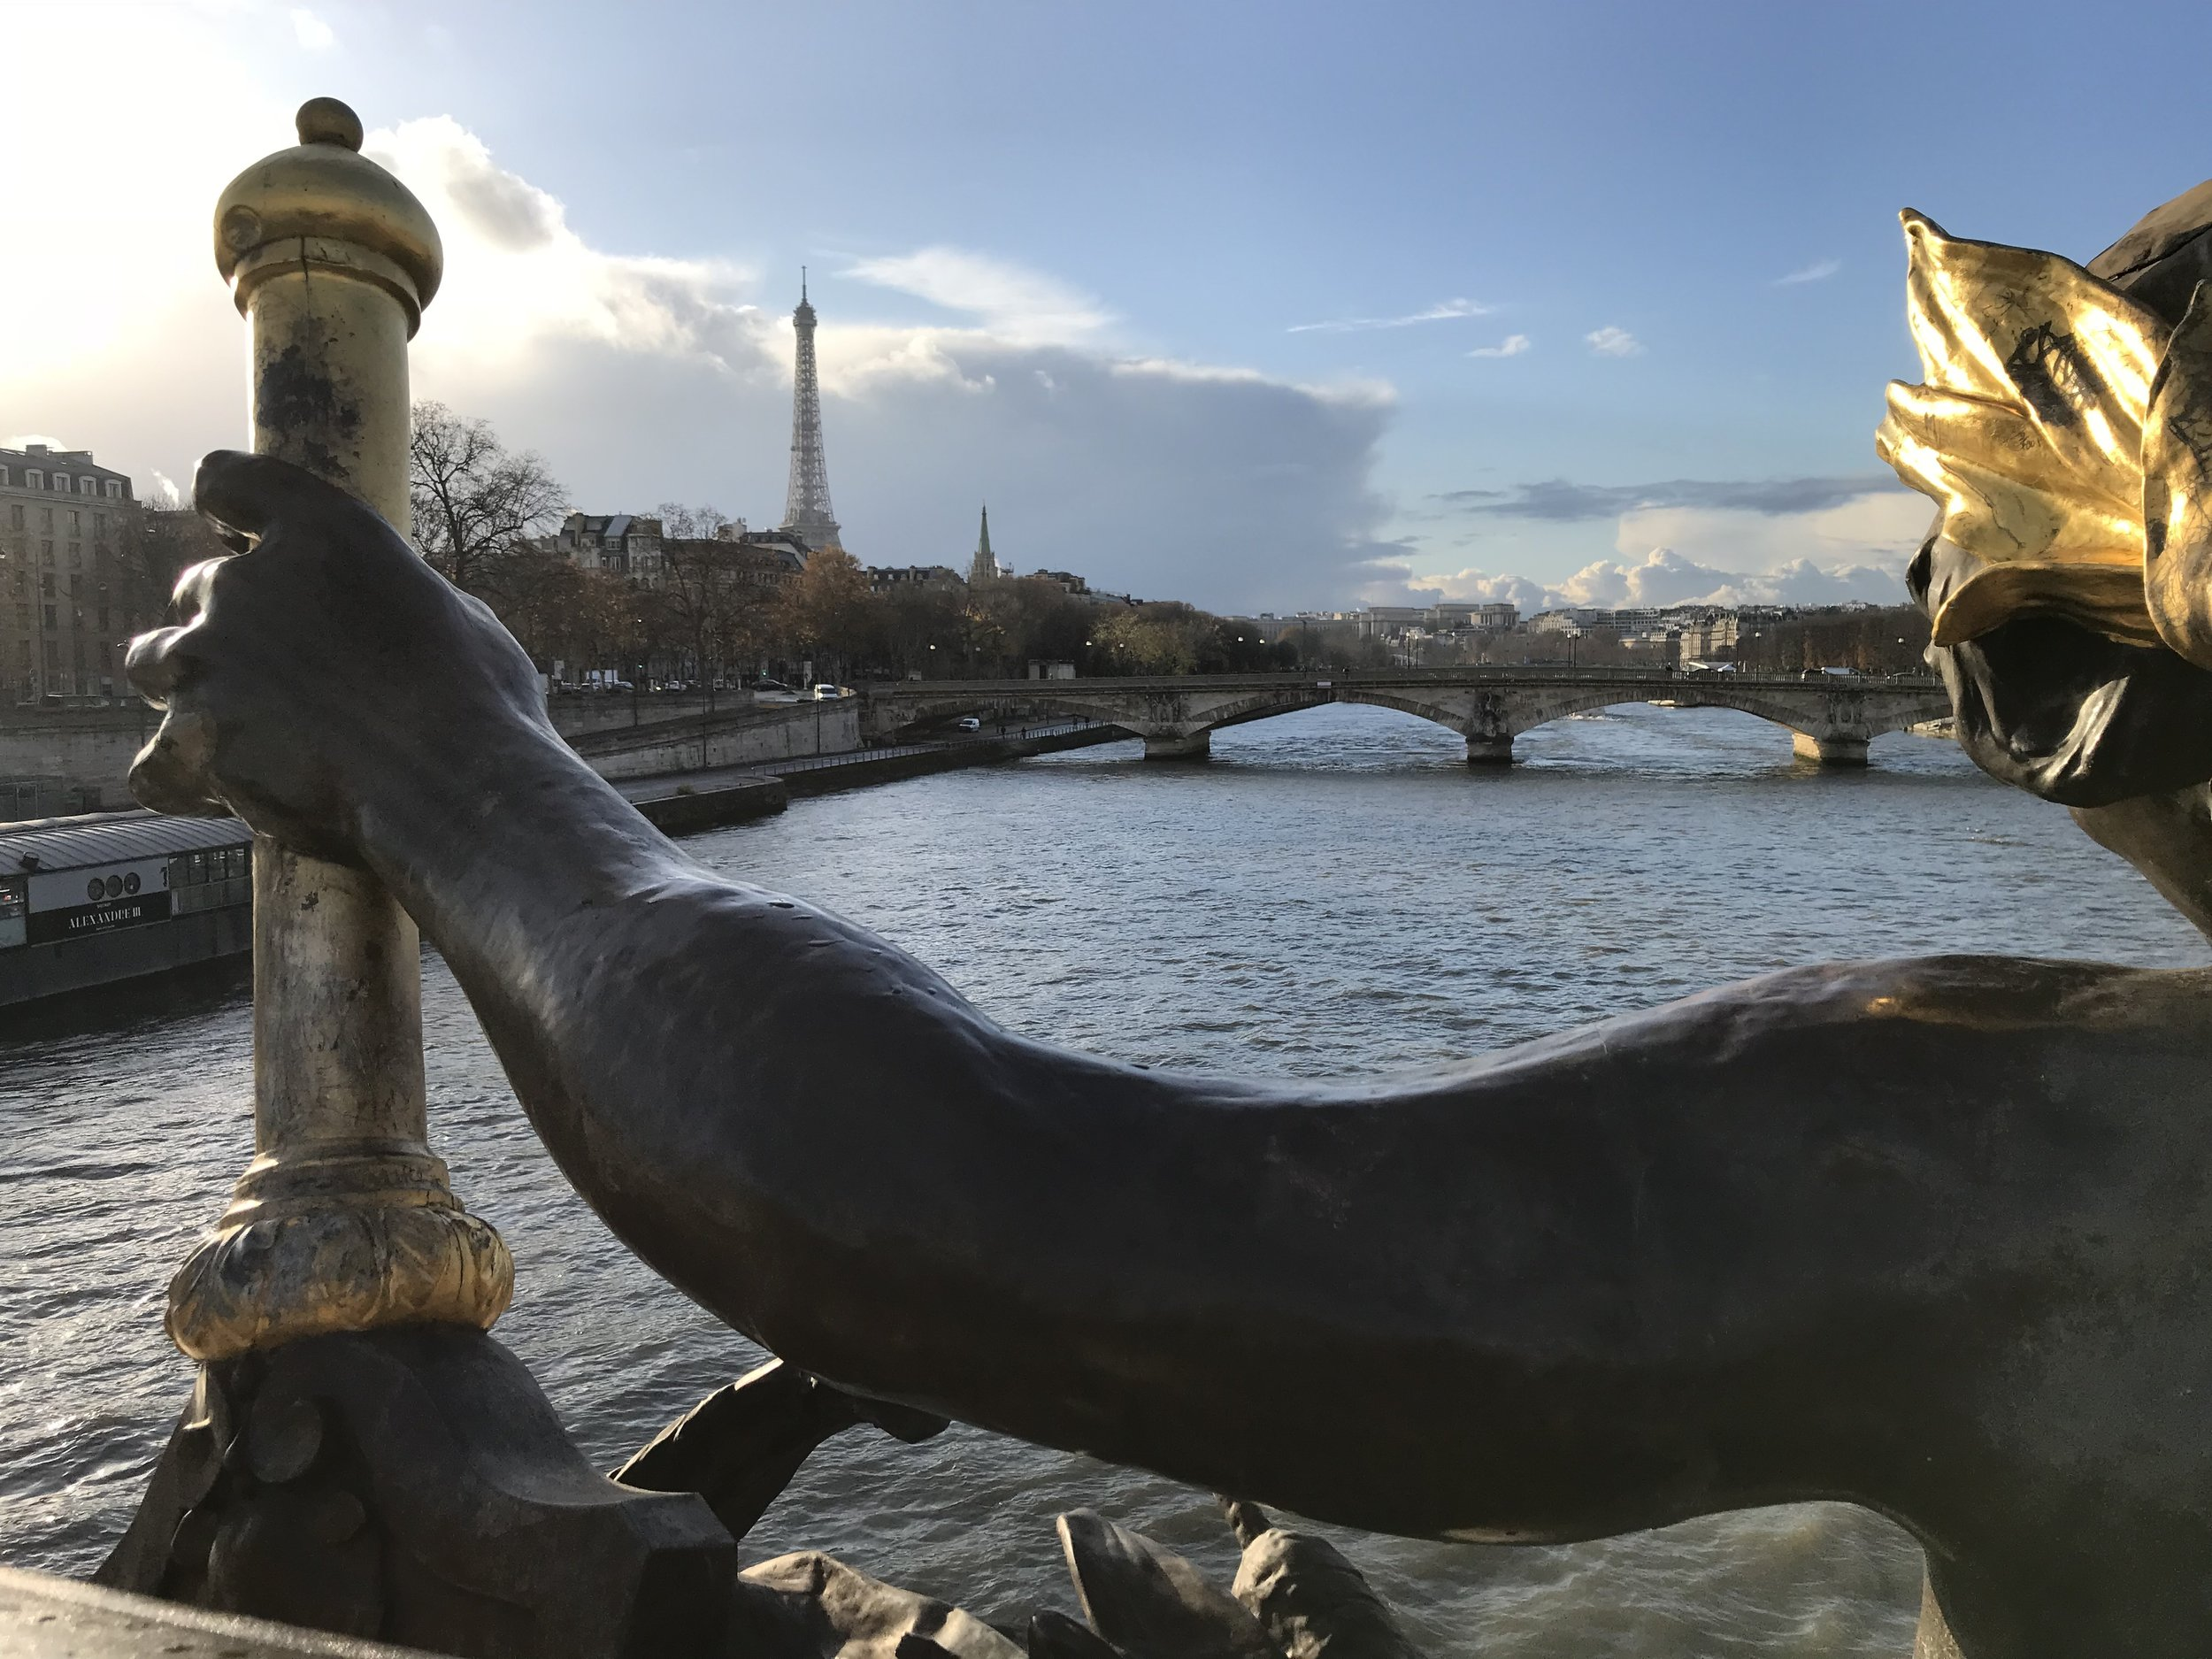 Paris_bridge_november_29_2017.jpg